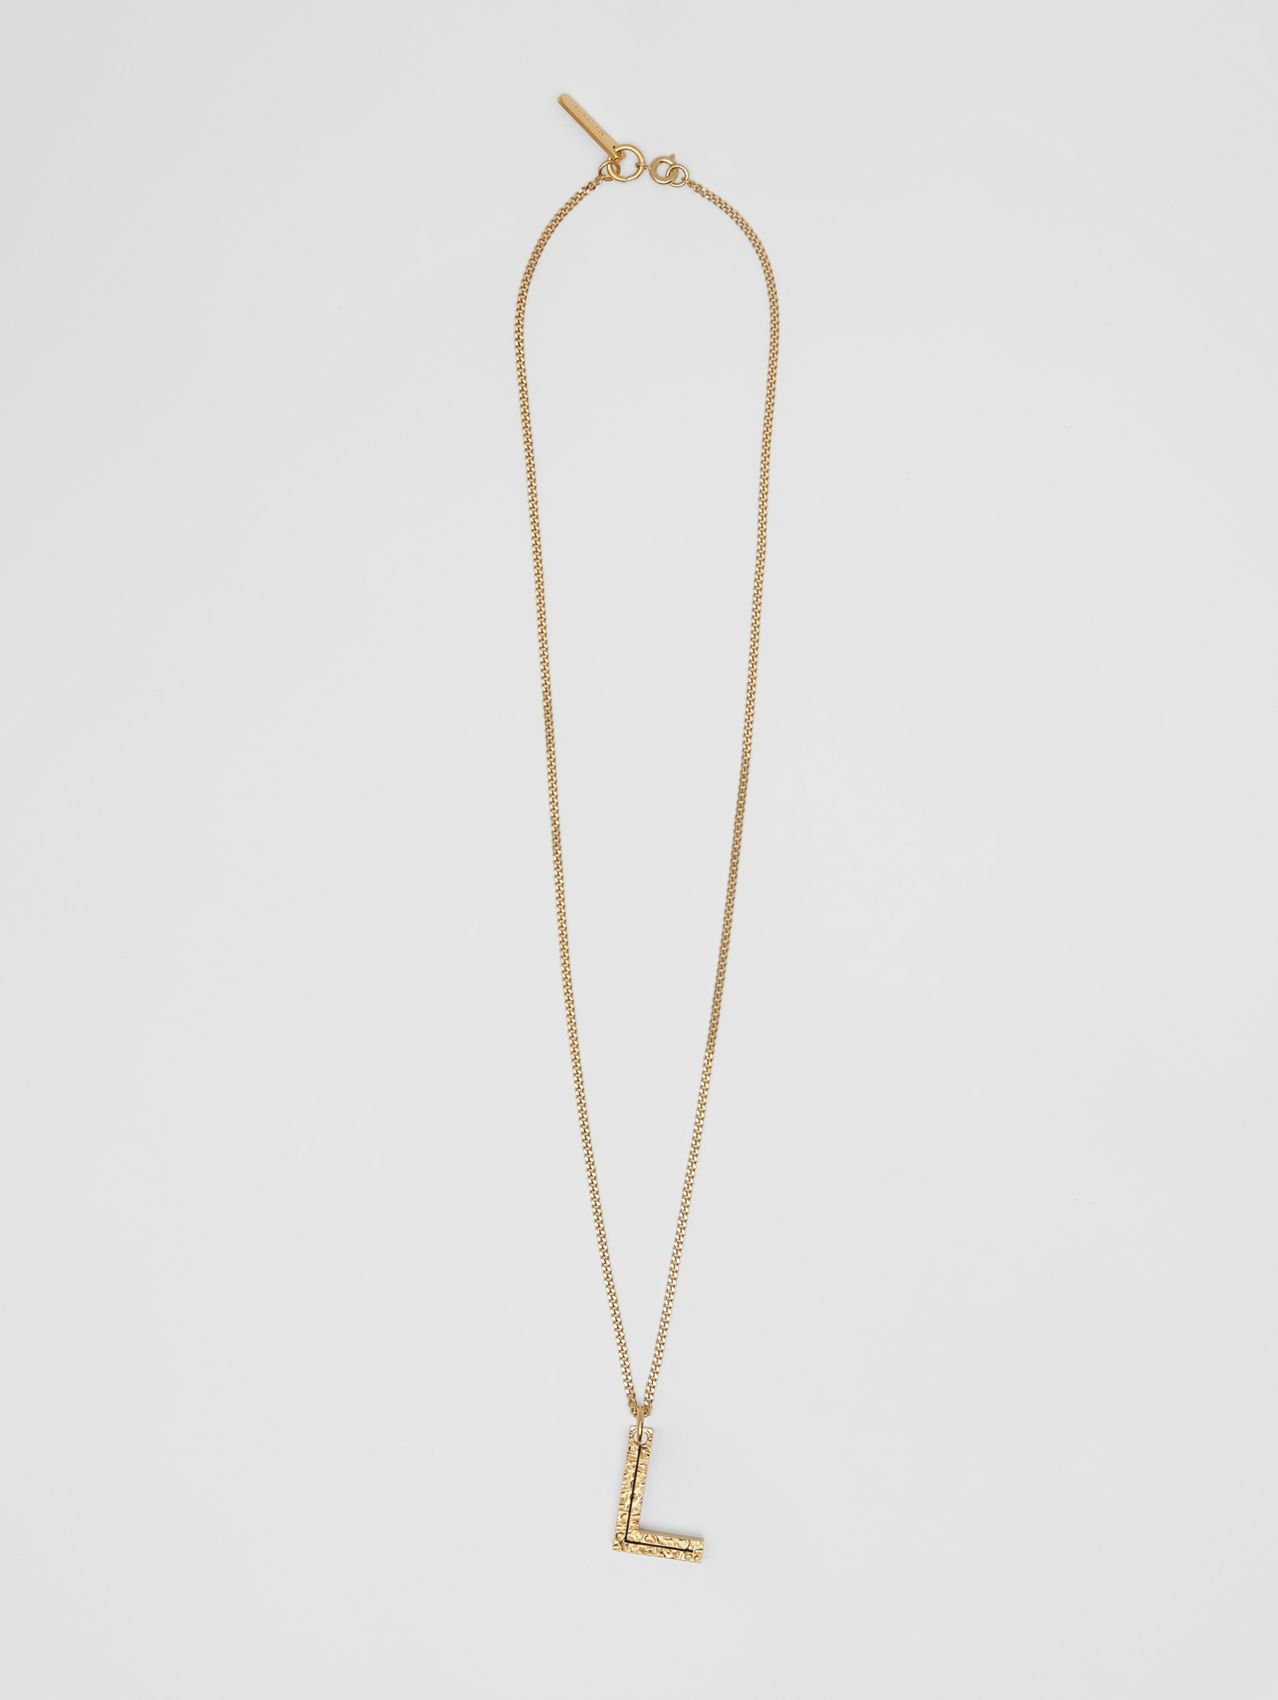 'L' Alphabet Charm Gold-plated Necklace in Light